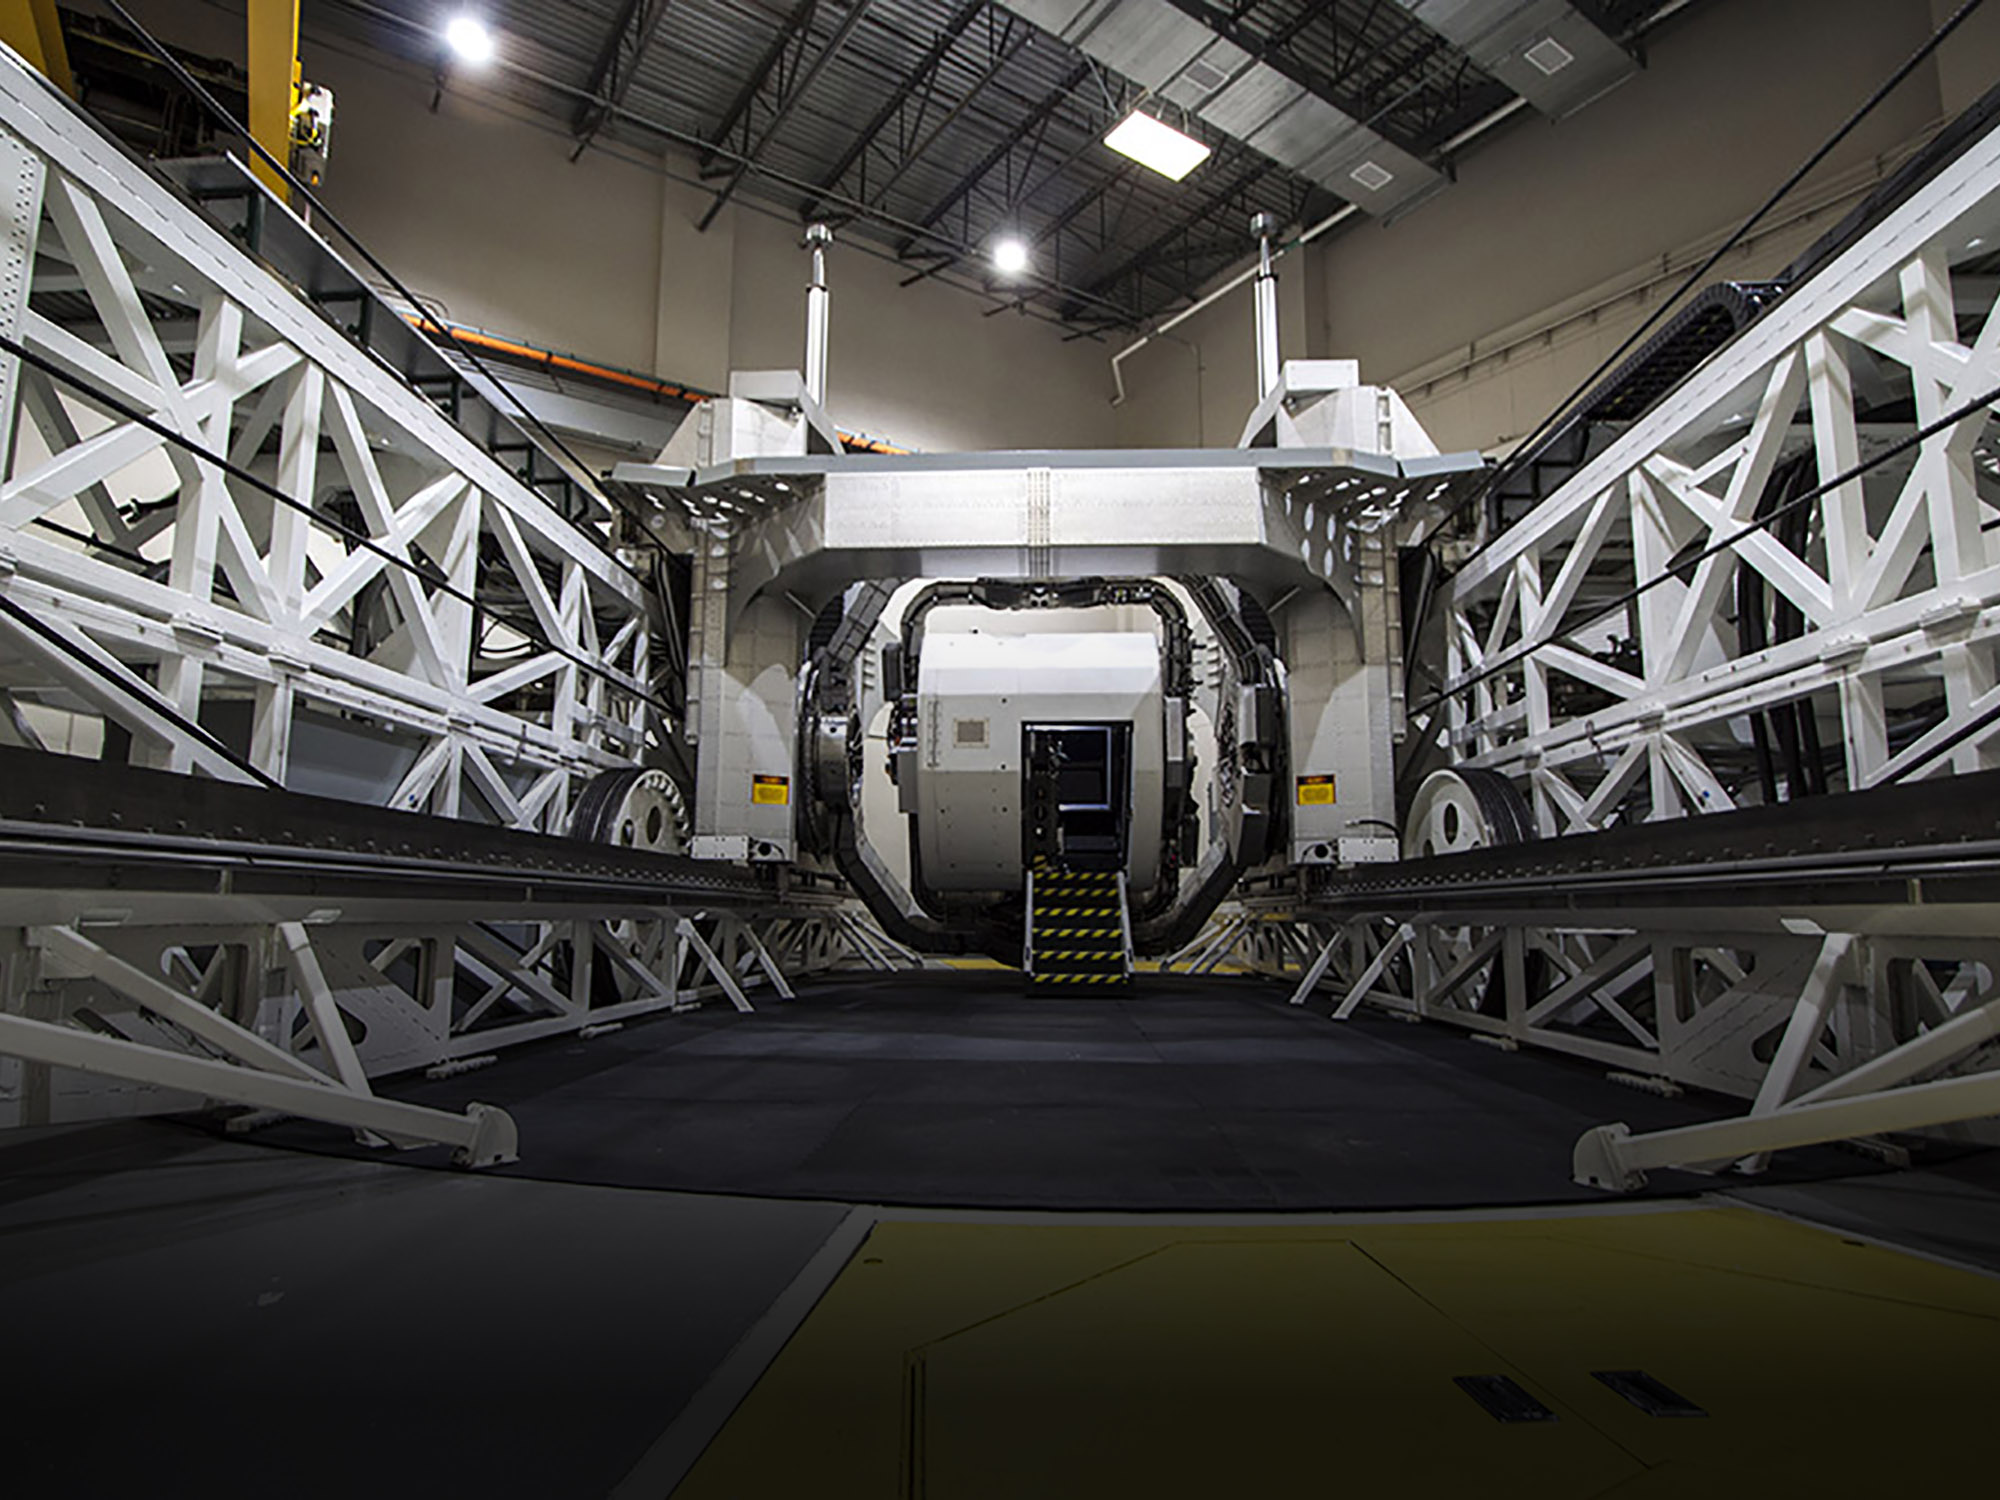 KRAKEN Advanced Spatial Disorientation Trainer at Wright-Patterson Air Force Base